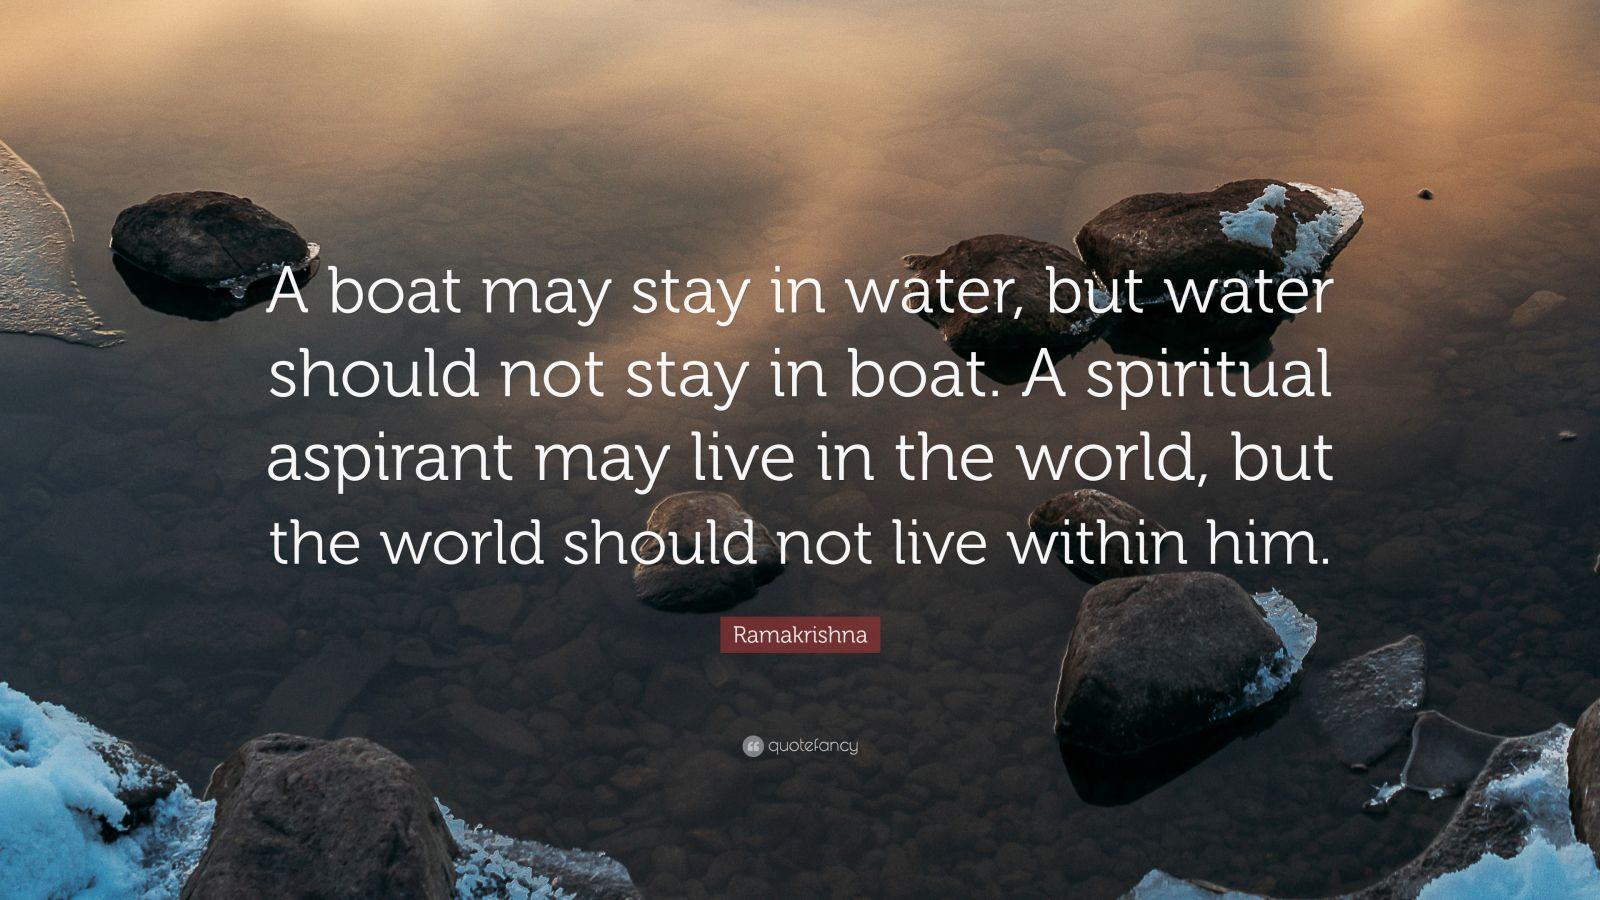 """Ramakrishna Quote: """"A boat may stay in water, but water should not stay in boat. A spiritual aspirant may live in the world, but the world should not live within him."""""""